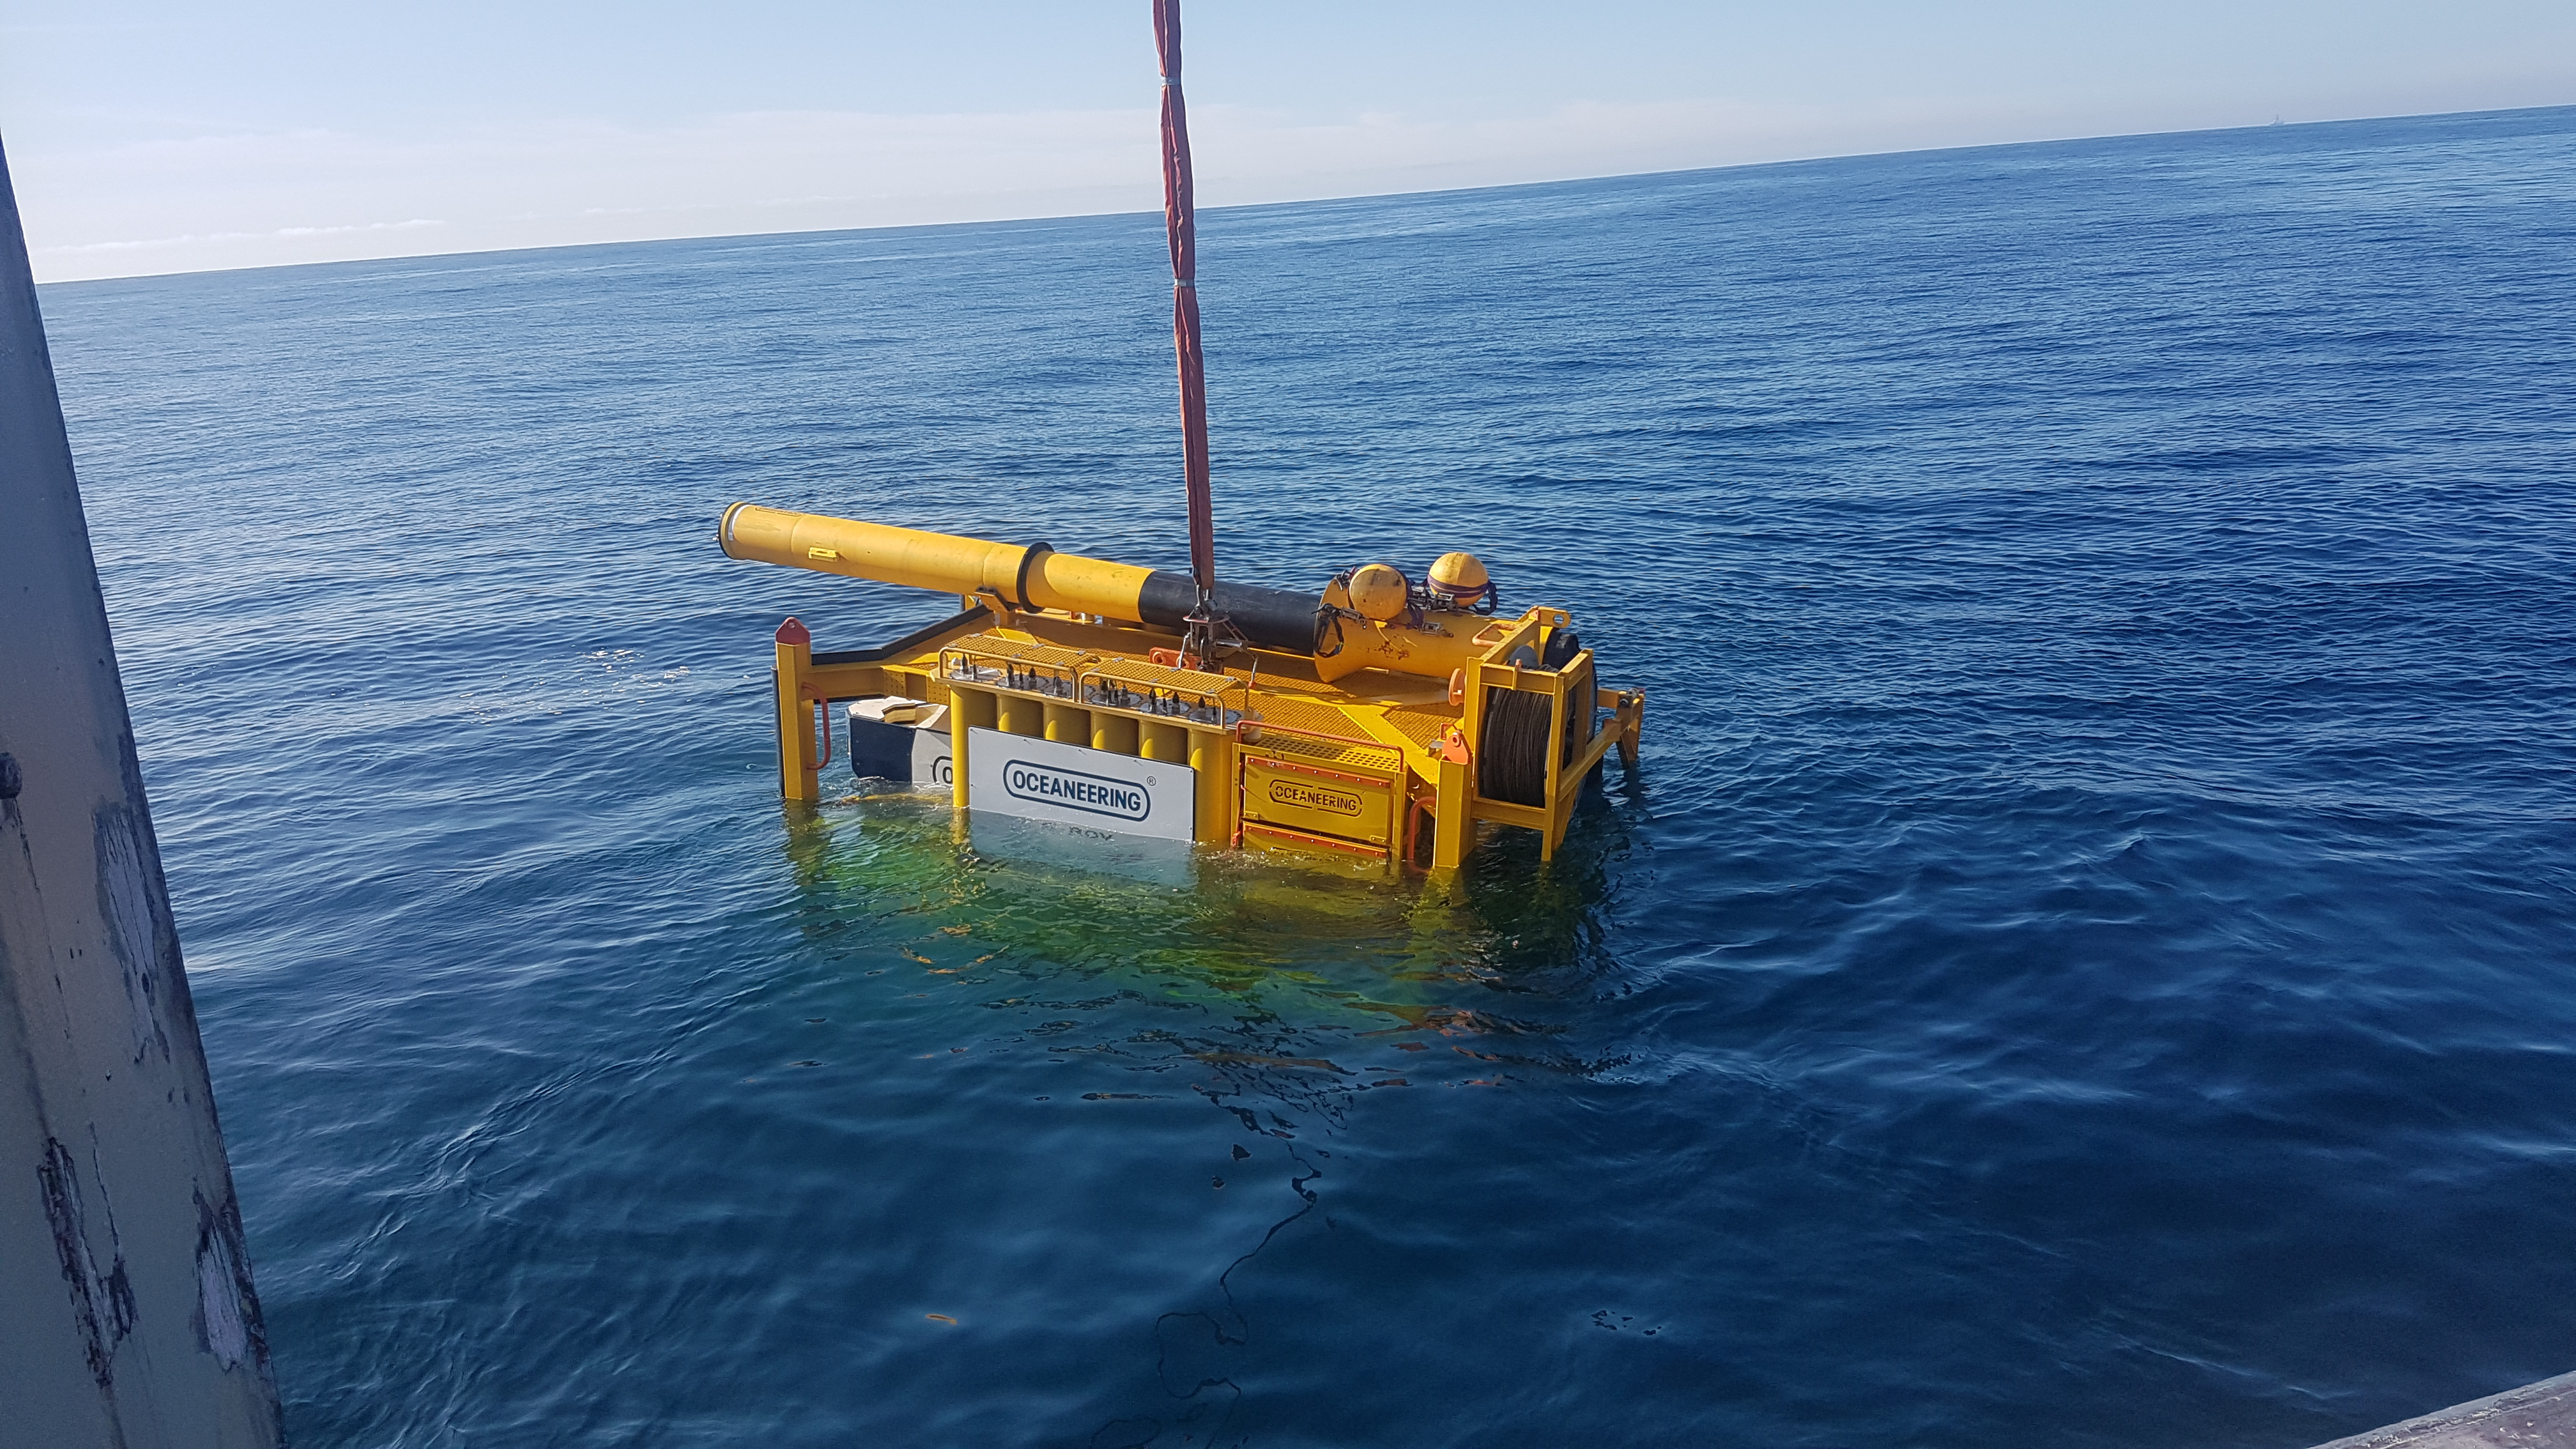 The Liberty E-ROV system is lowered into the water from a vessel of opportunity in the Norwegian North Sea. (Source: Oceaneering)